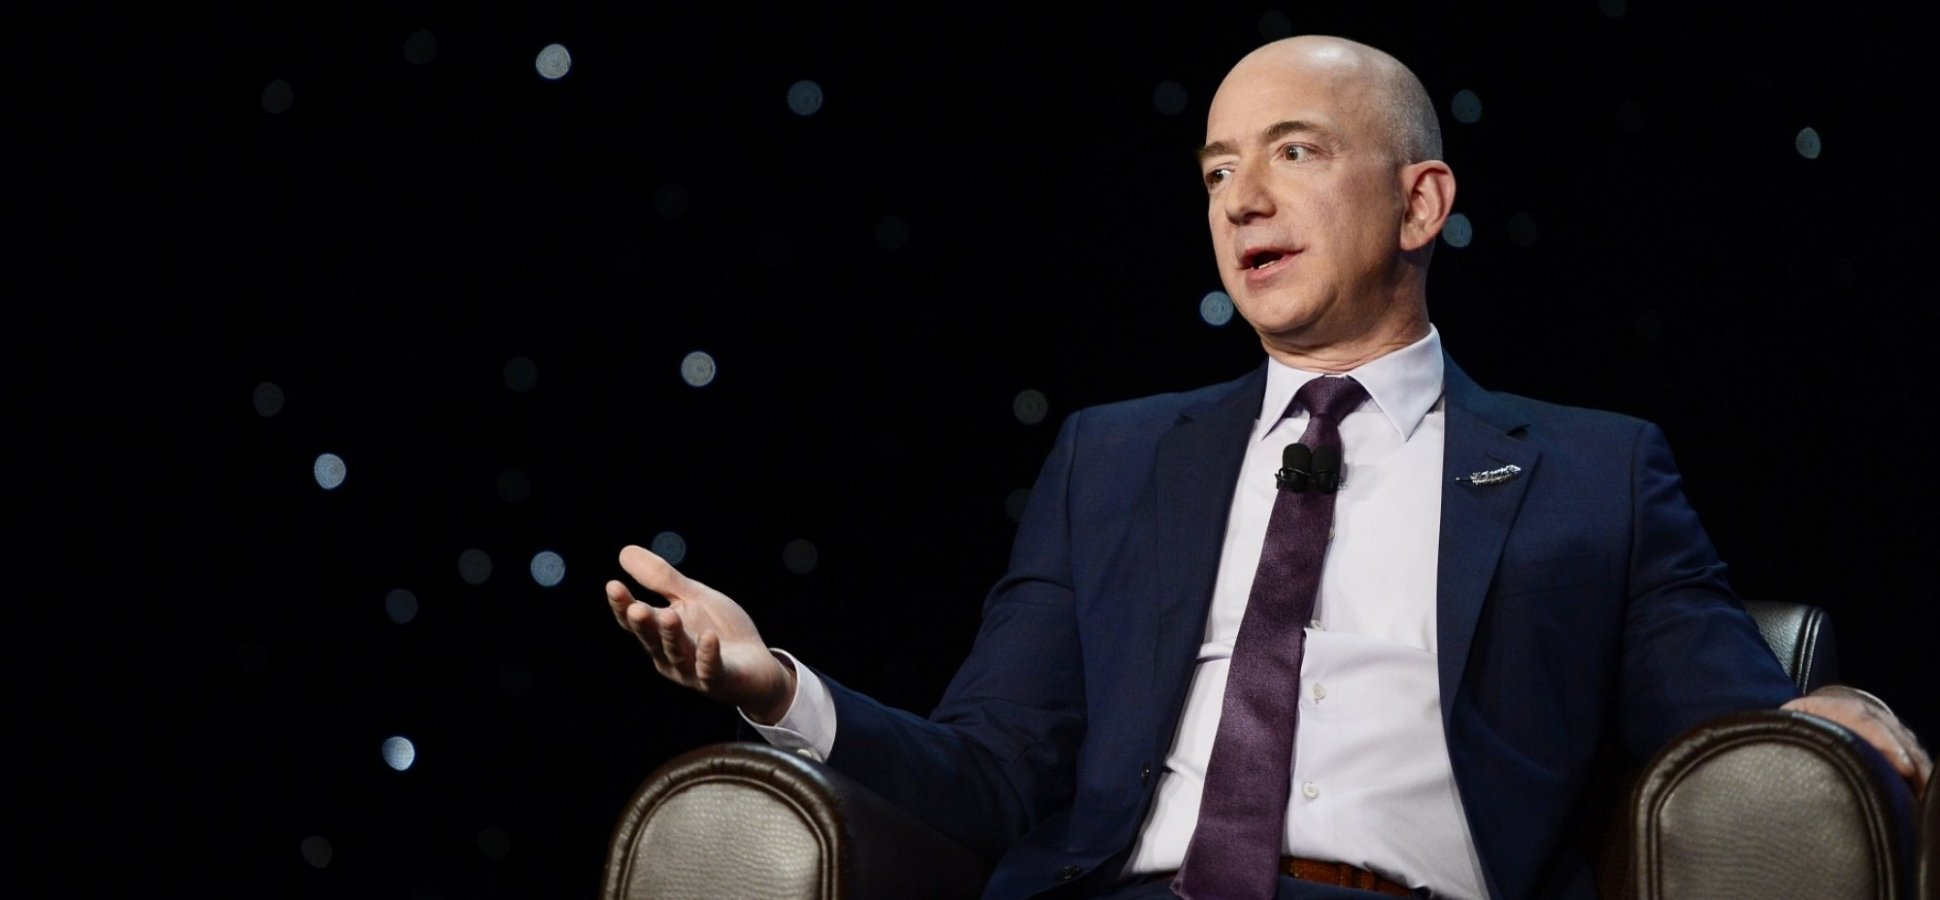 7 Top Books That Jeff Bezos, Bill Gates, and Apple CEO Tim Cook Think You Should Read